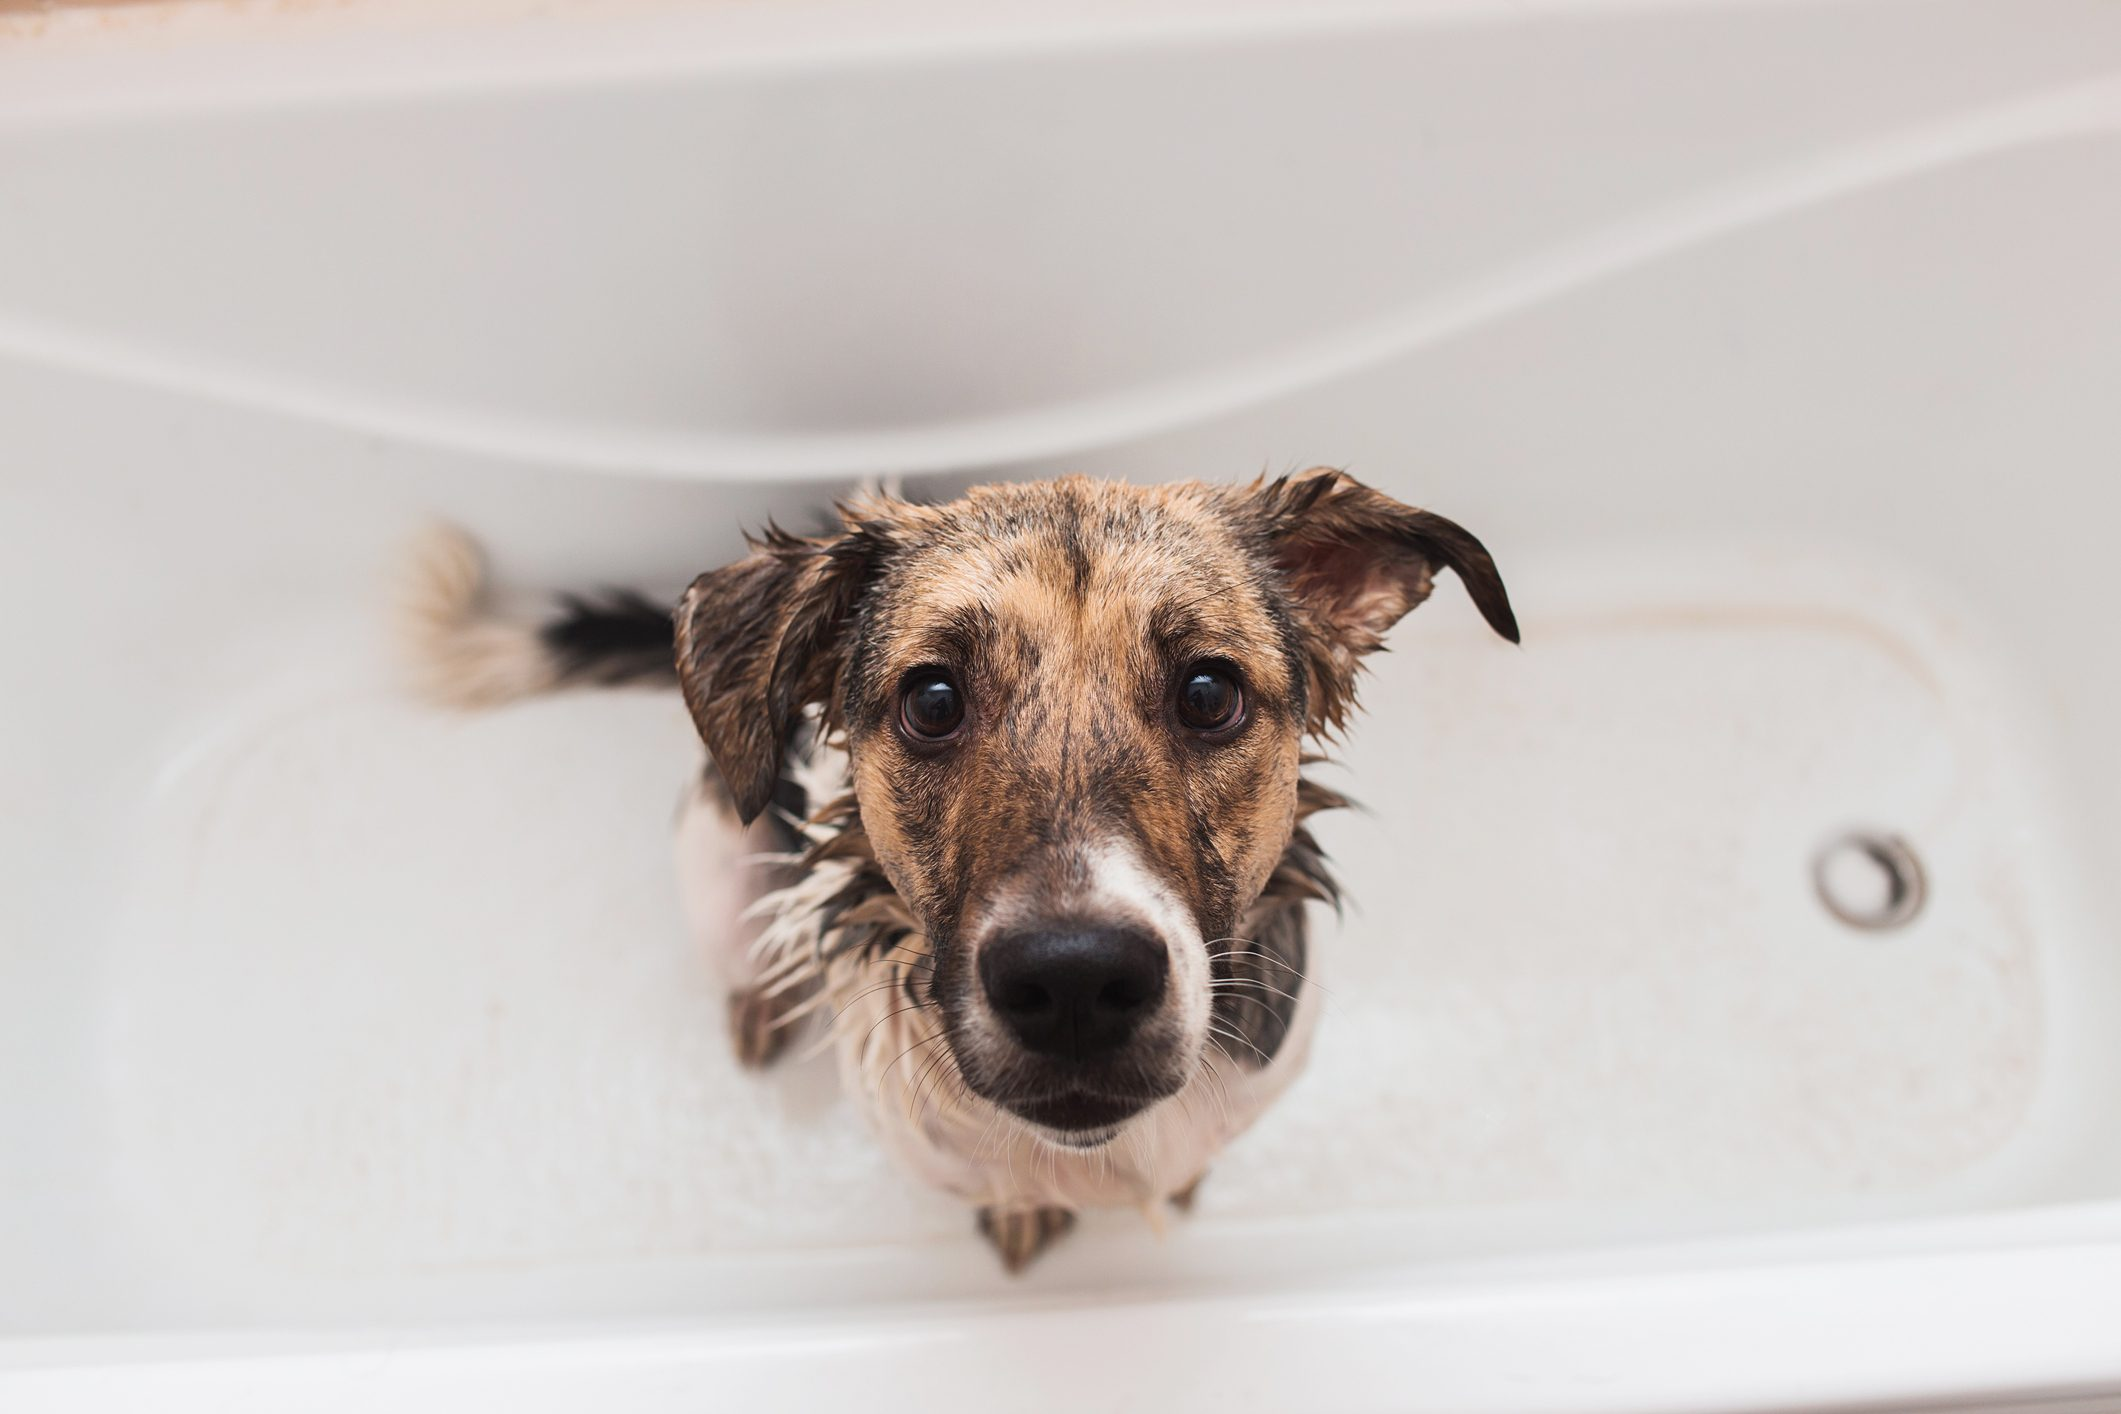 dog in bath tub looking up at camera